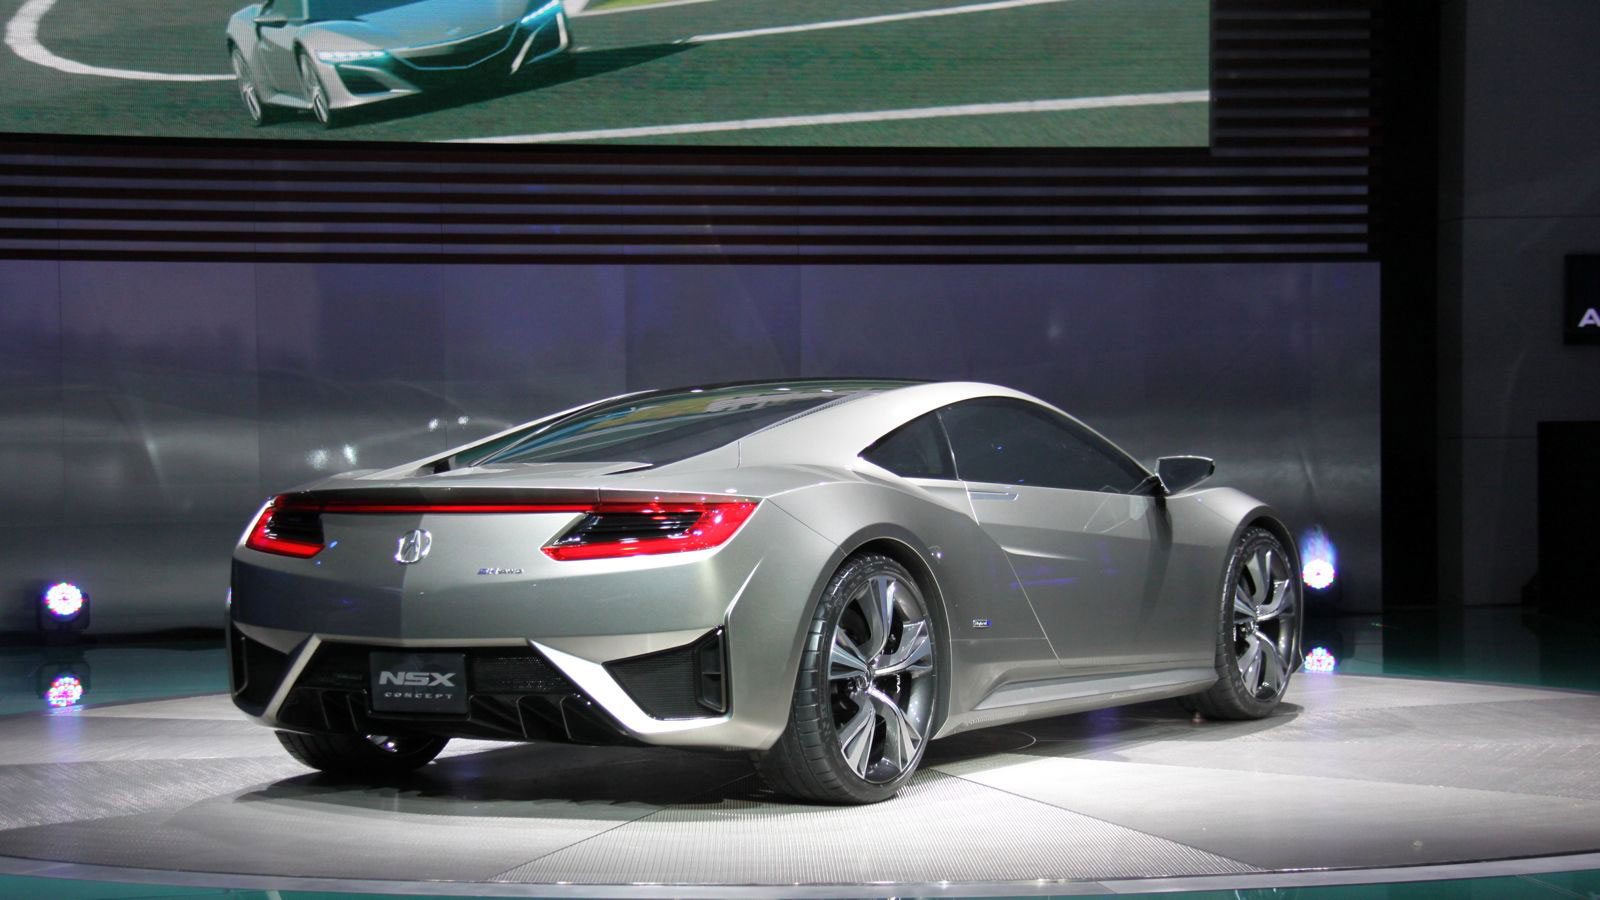 So where does this latest Acura NSX concept fit into that?